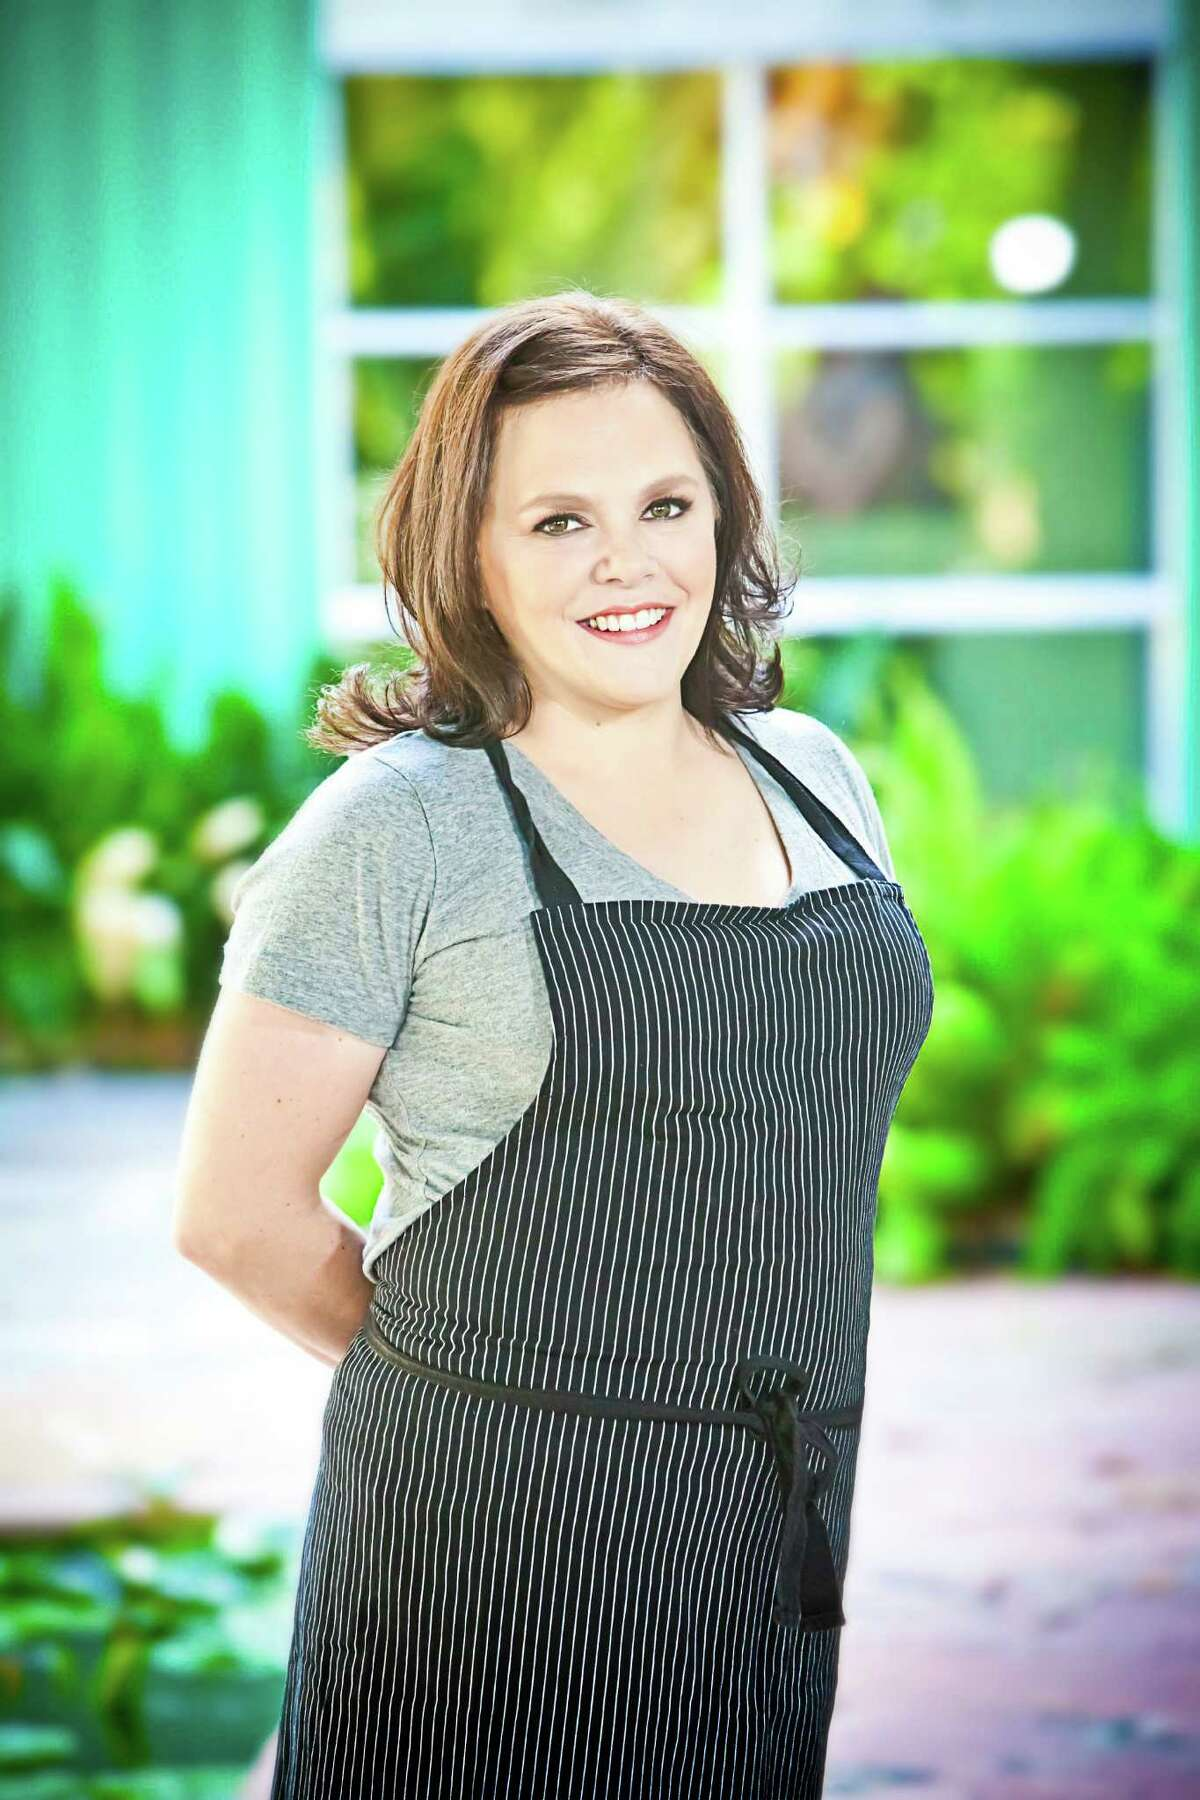 Pastry chef Rebecca Masson is the owner of Fluff Bake Bar.Pastry chef Rebecca Masson is the owner of Fluff Bake Bar.